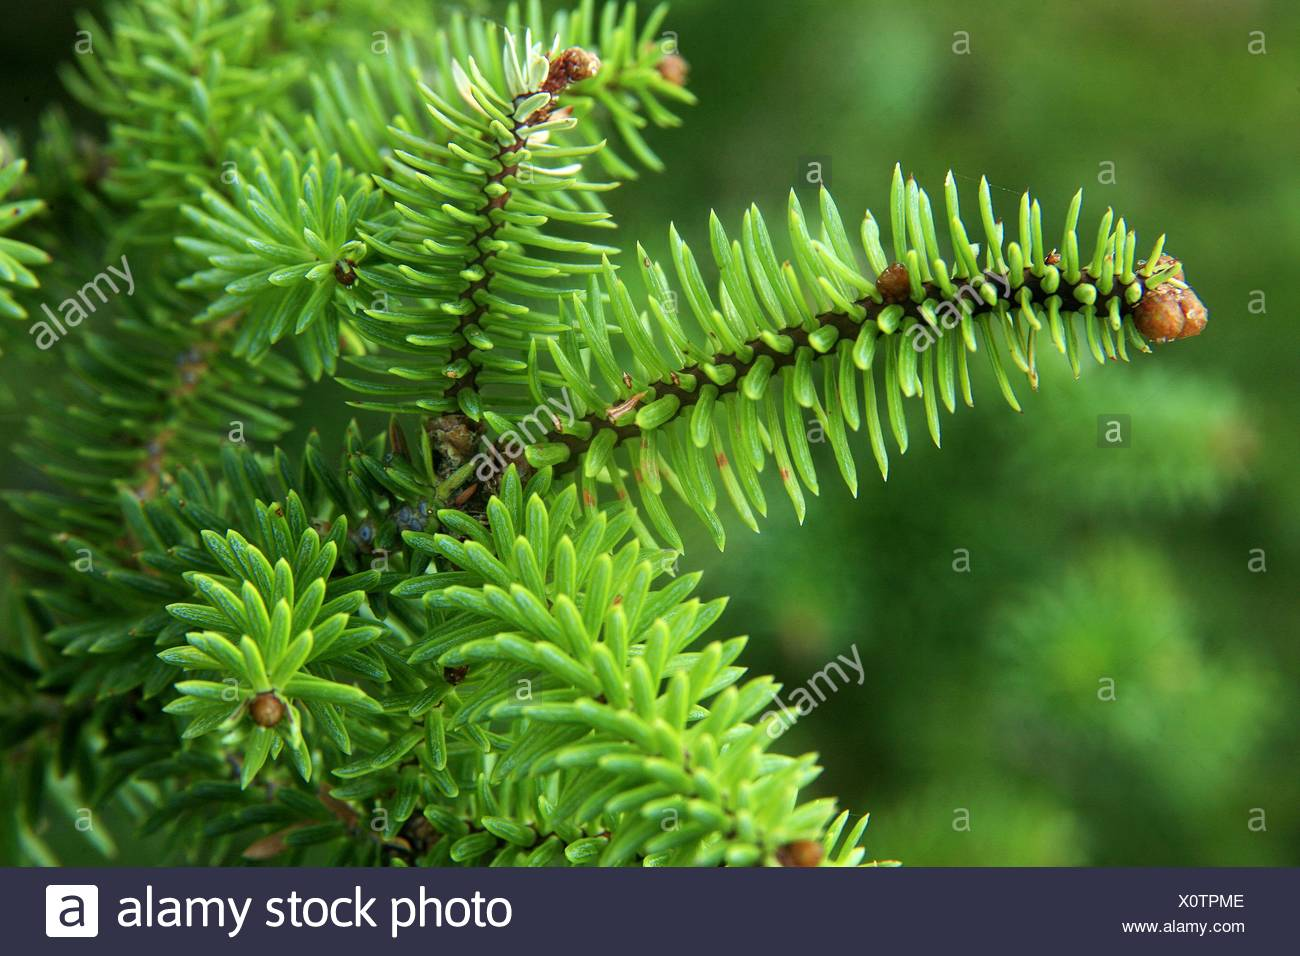 Abies Pinsapo Stock Photos Abies Pinsapo Stock Images Page 3 Alamy